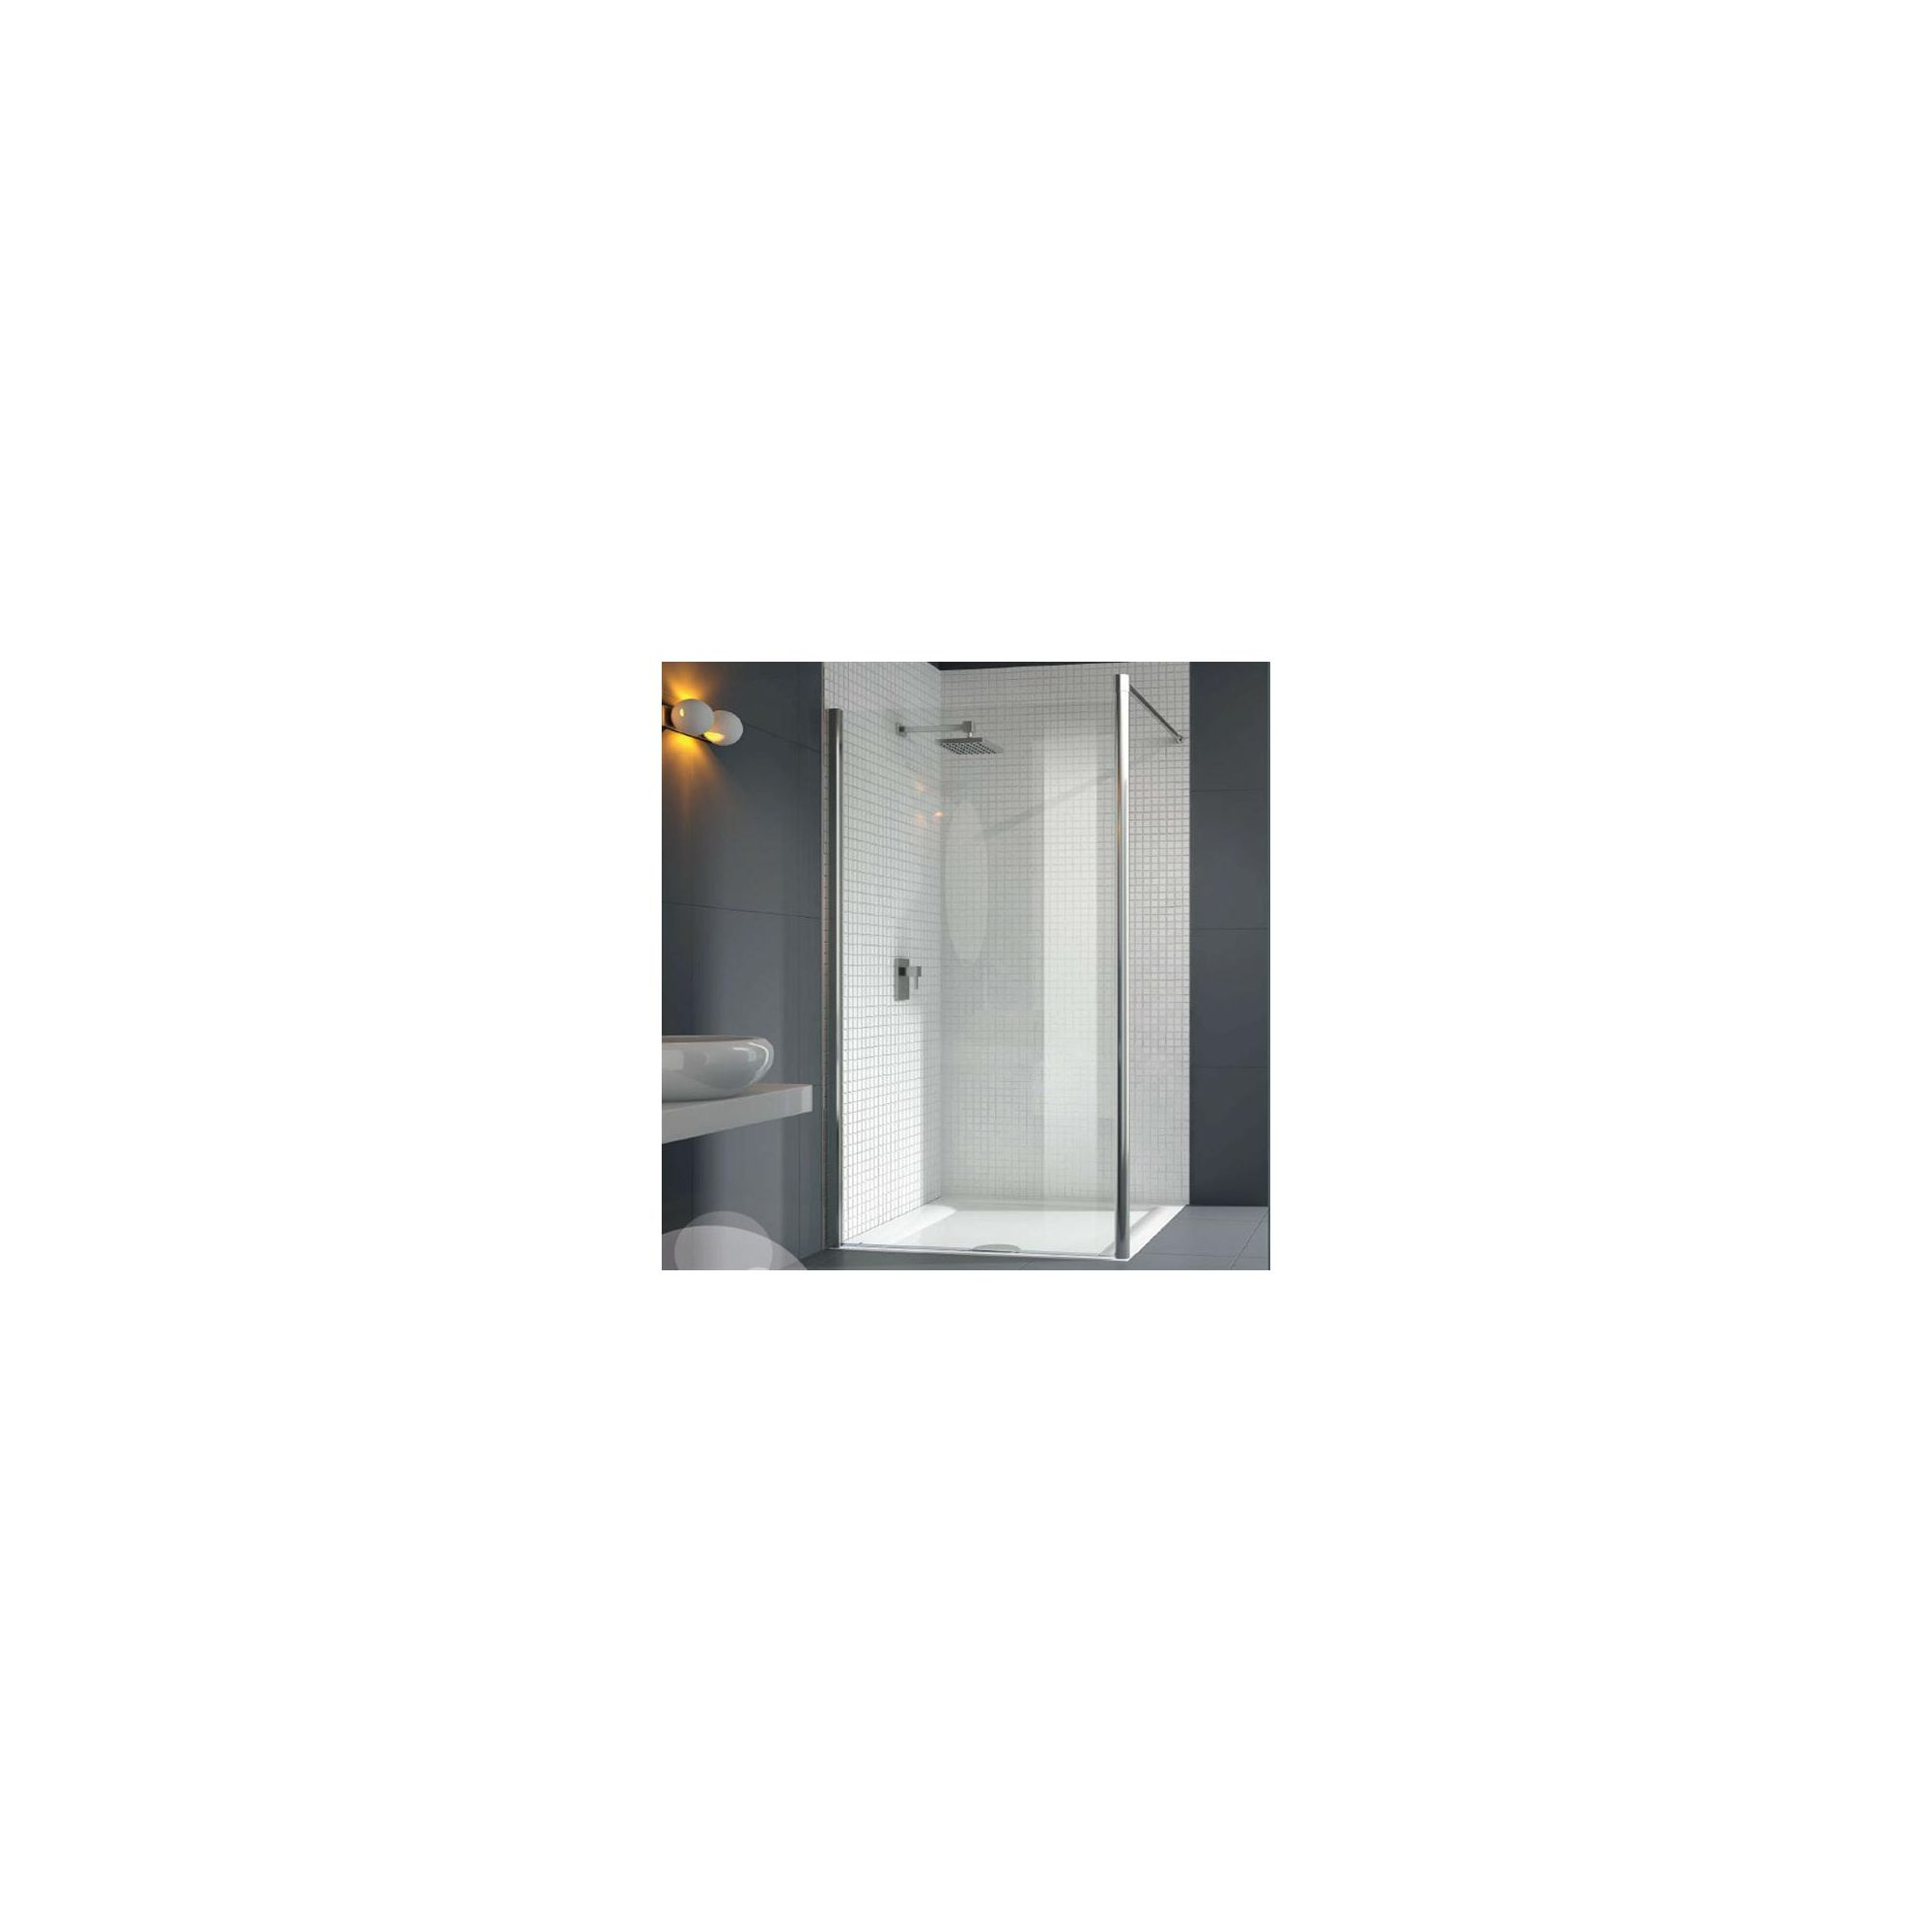 Merlyn Vivid Six Wet Room Shower Glass Panel 900mm Wide with Horizontal Support Bar at Tesco Direct